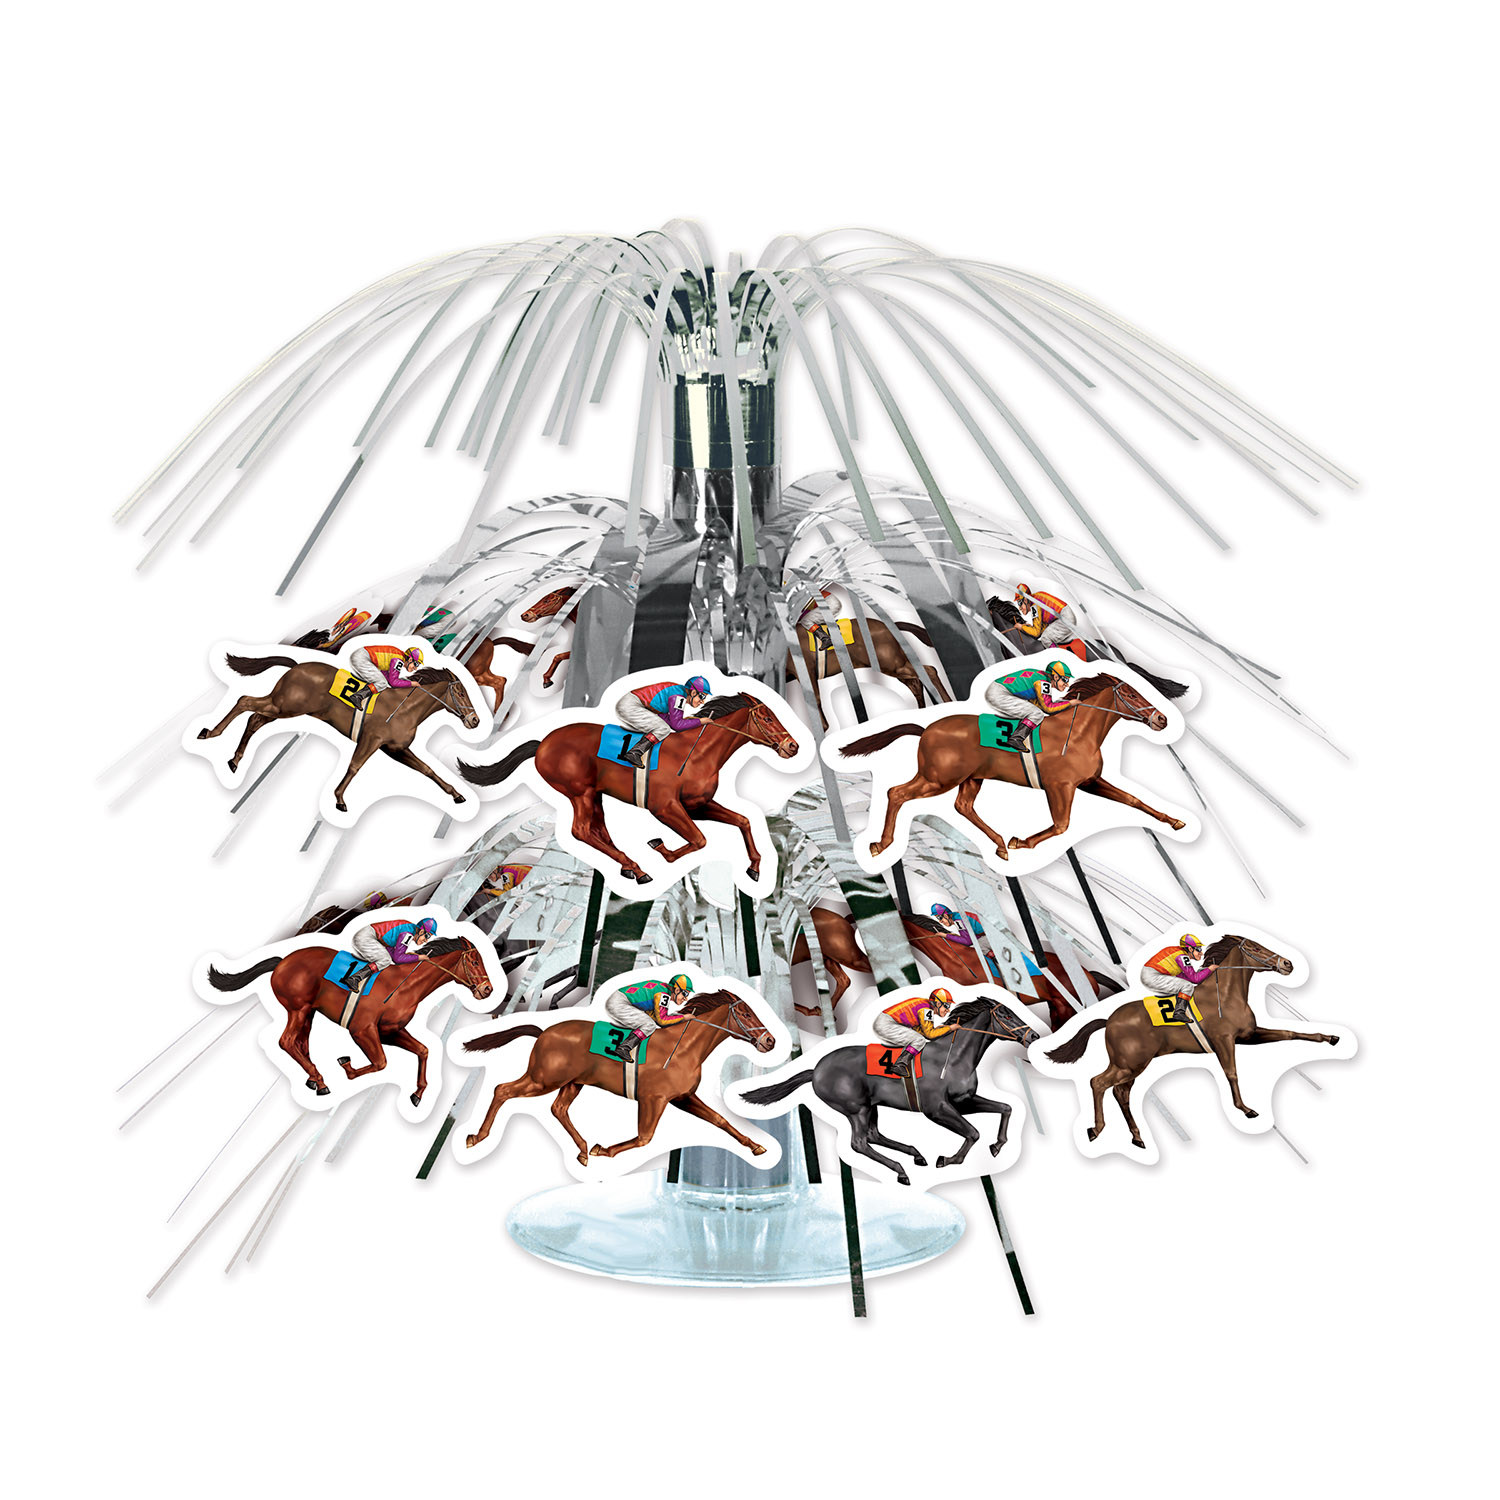 Horse Racing Mini Cascade Centerpiece (Pack of 12) Horse Racing, Mini Cascade Centerpiece, Derby Day, Table Centerpieces, Sports decorations, Inexpensive party decorations, Wholesale party supplies